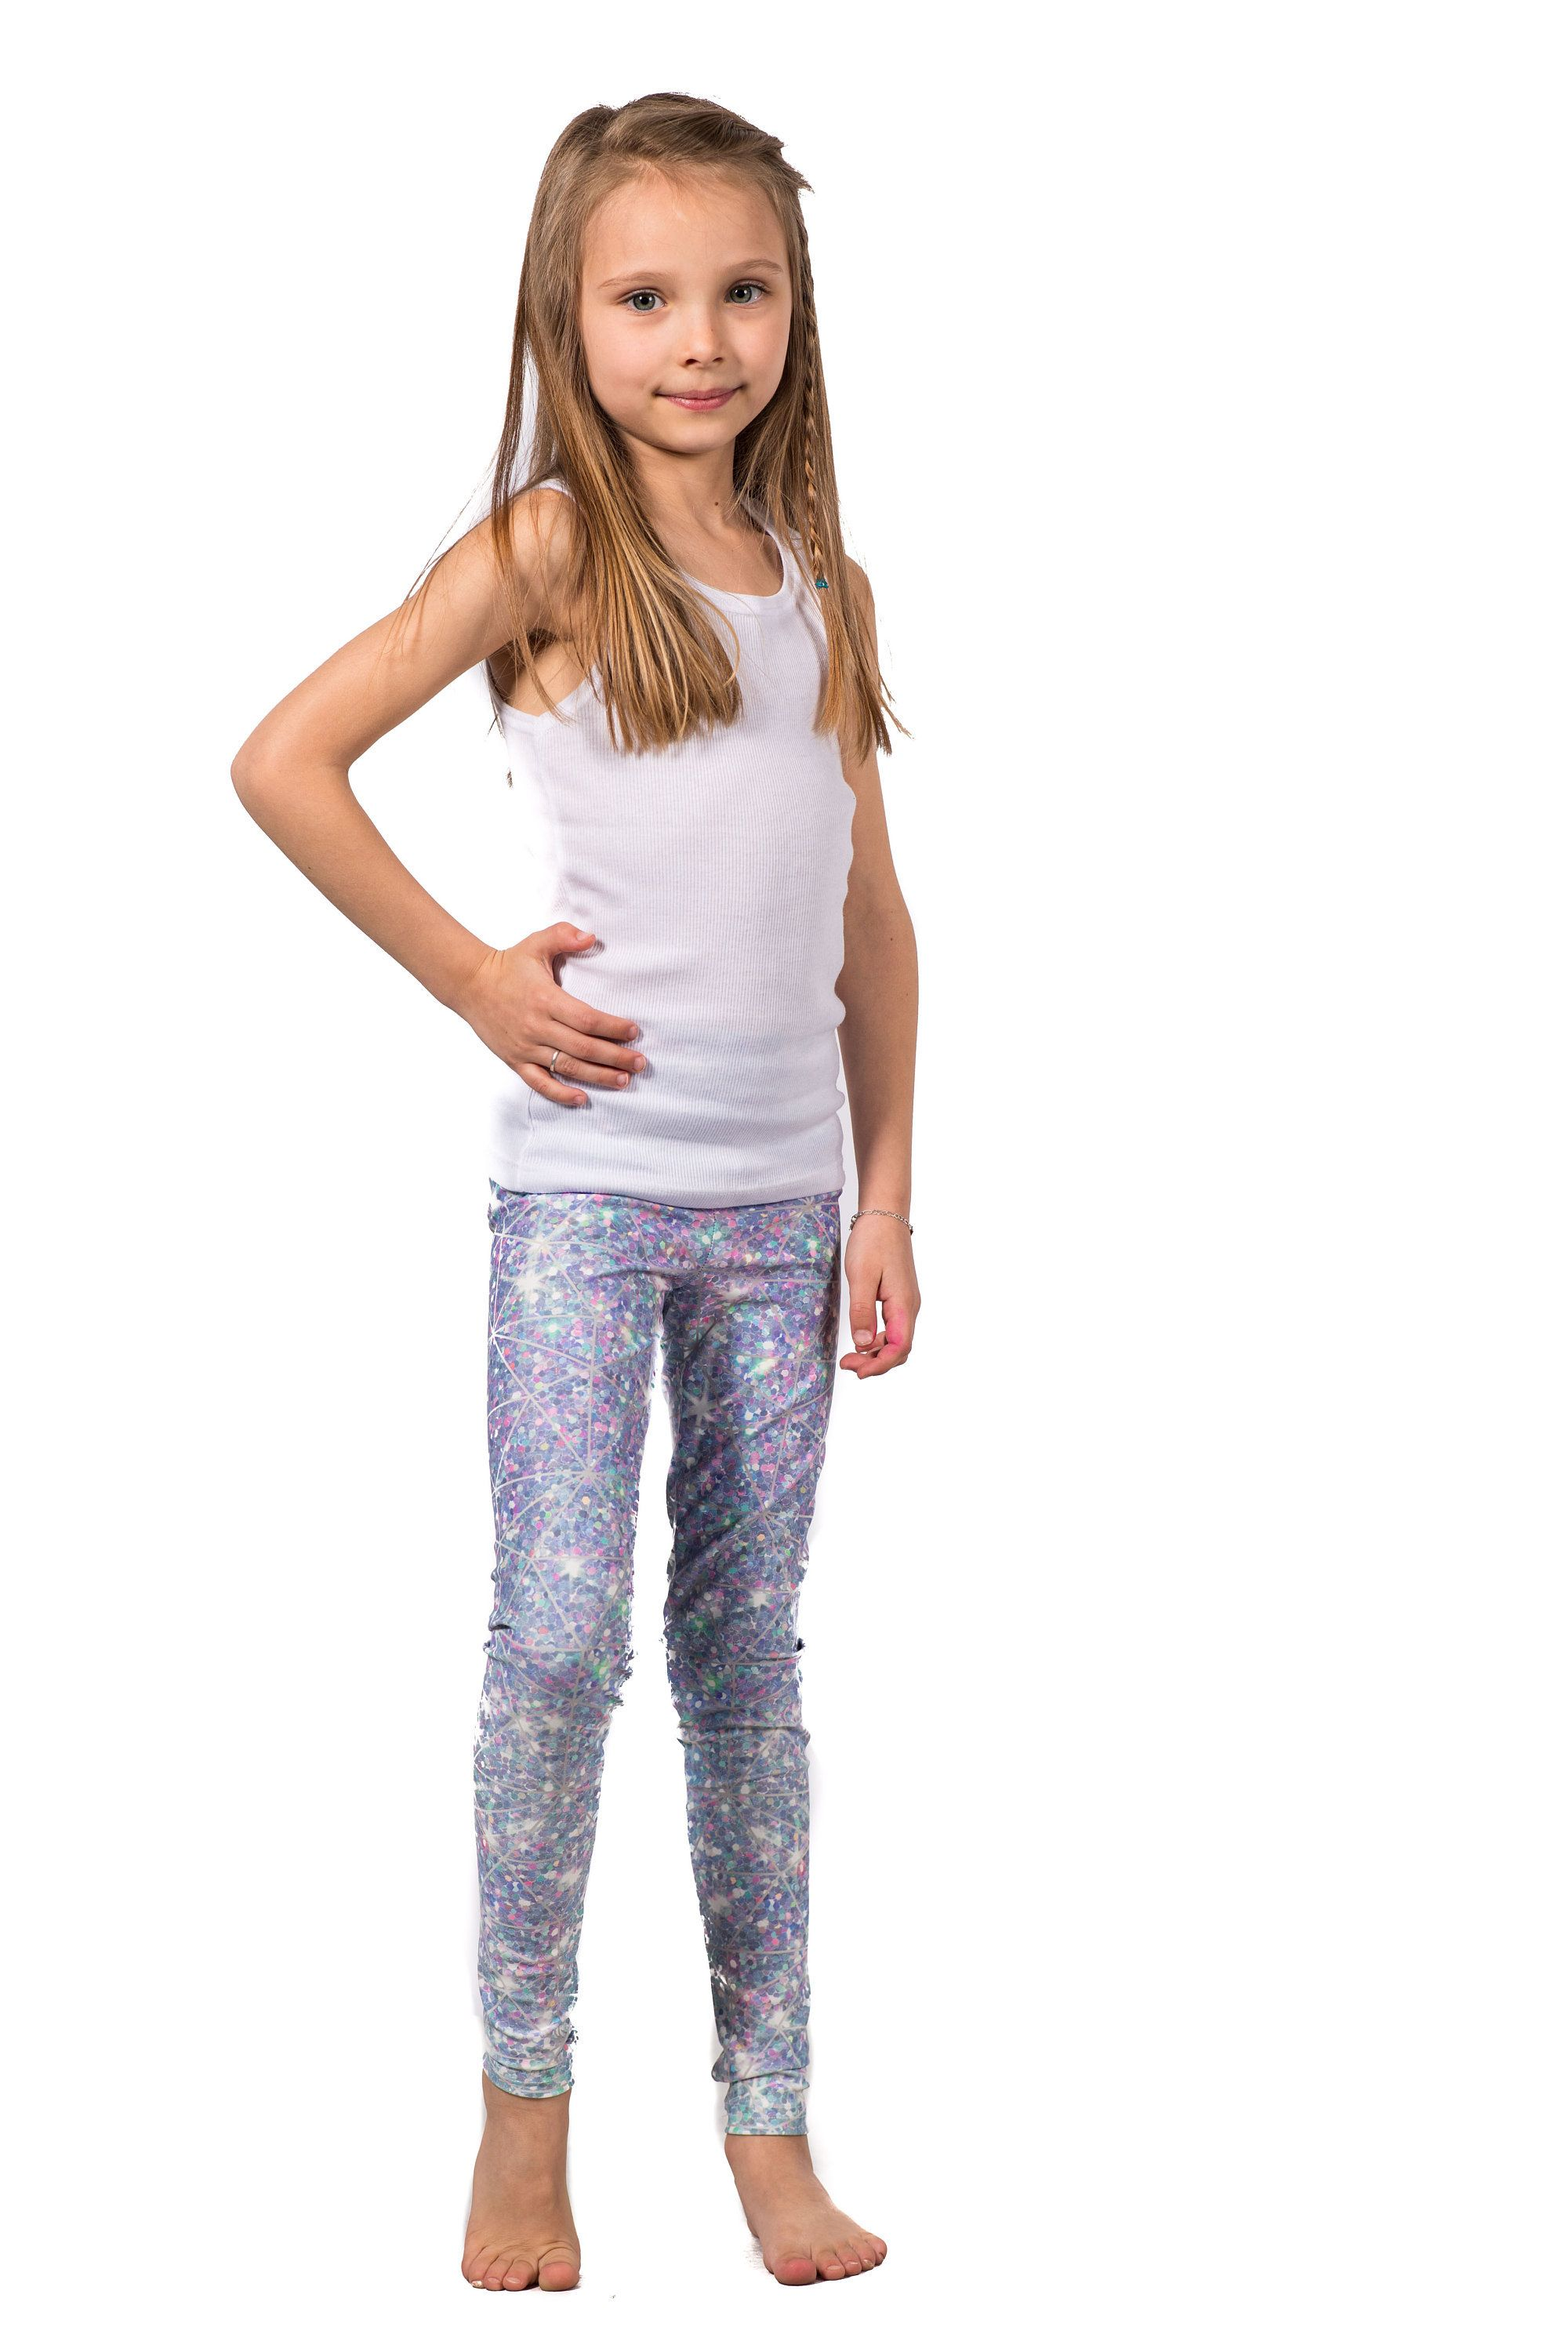 8760b73df3f84 Dia Kids Legging, Printed Sparkly Glitter Baby Tights, Pastel Glittery  Pattern Girls Leggings by shophotdame on Etsy